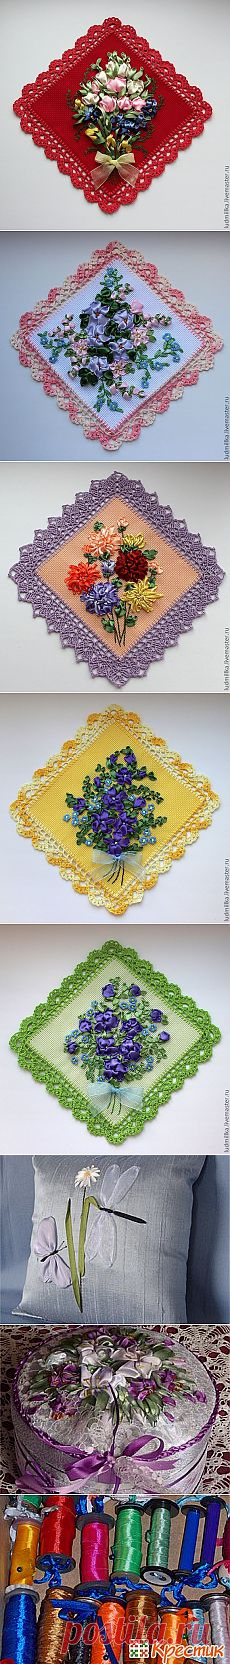 Embroidery | Care of the house. Photos and councils on Postila